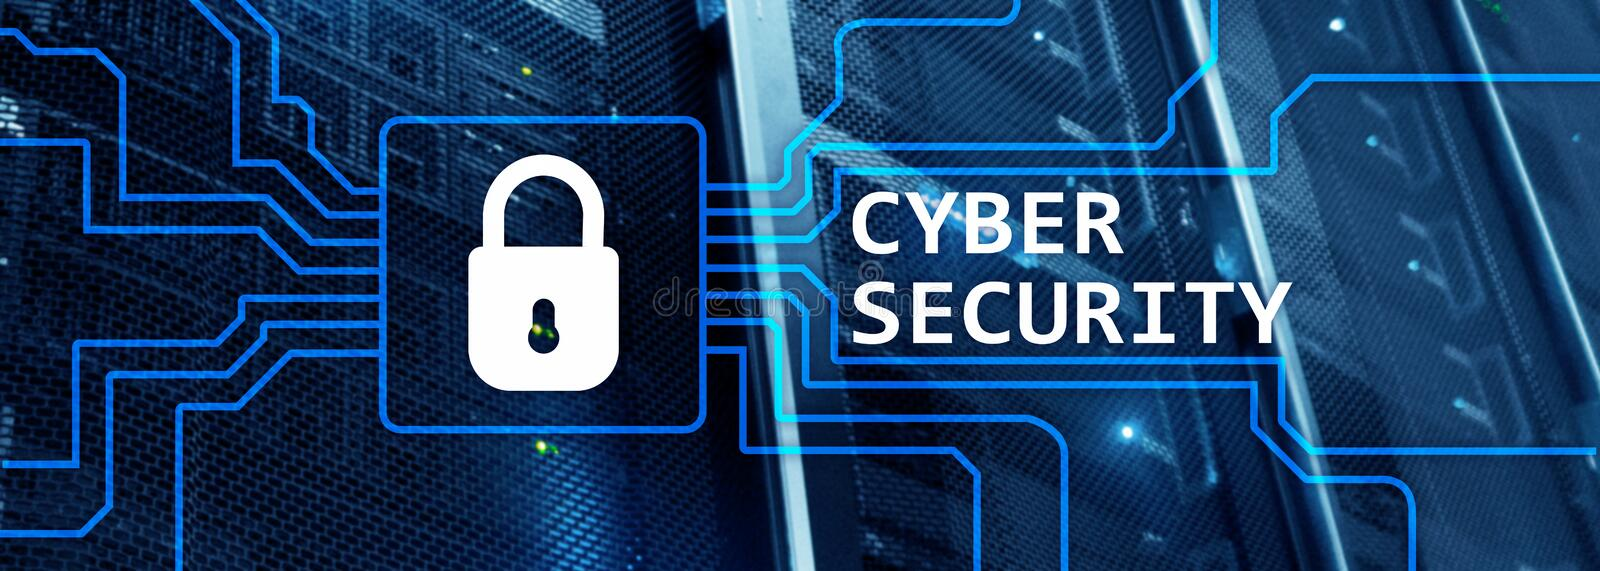 Web site header. Cyber security, information privacy and data protection concept on server room background.  royalty free stock photo